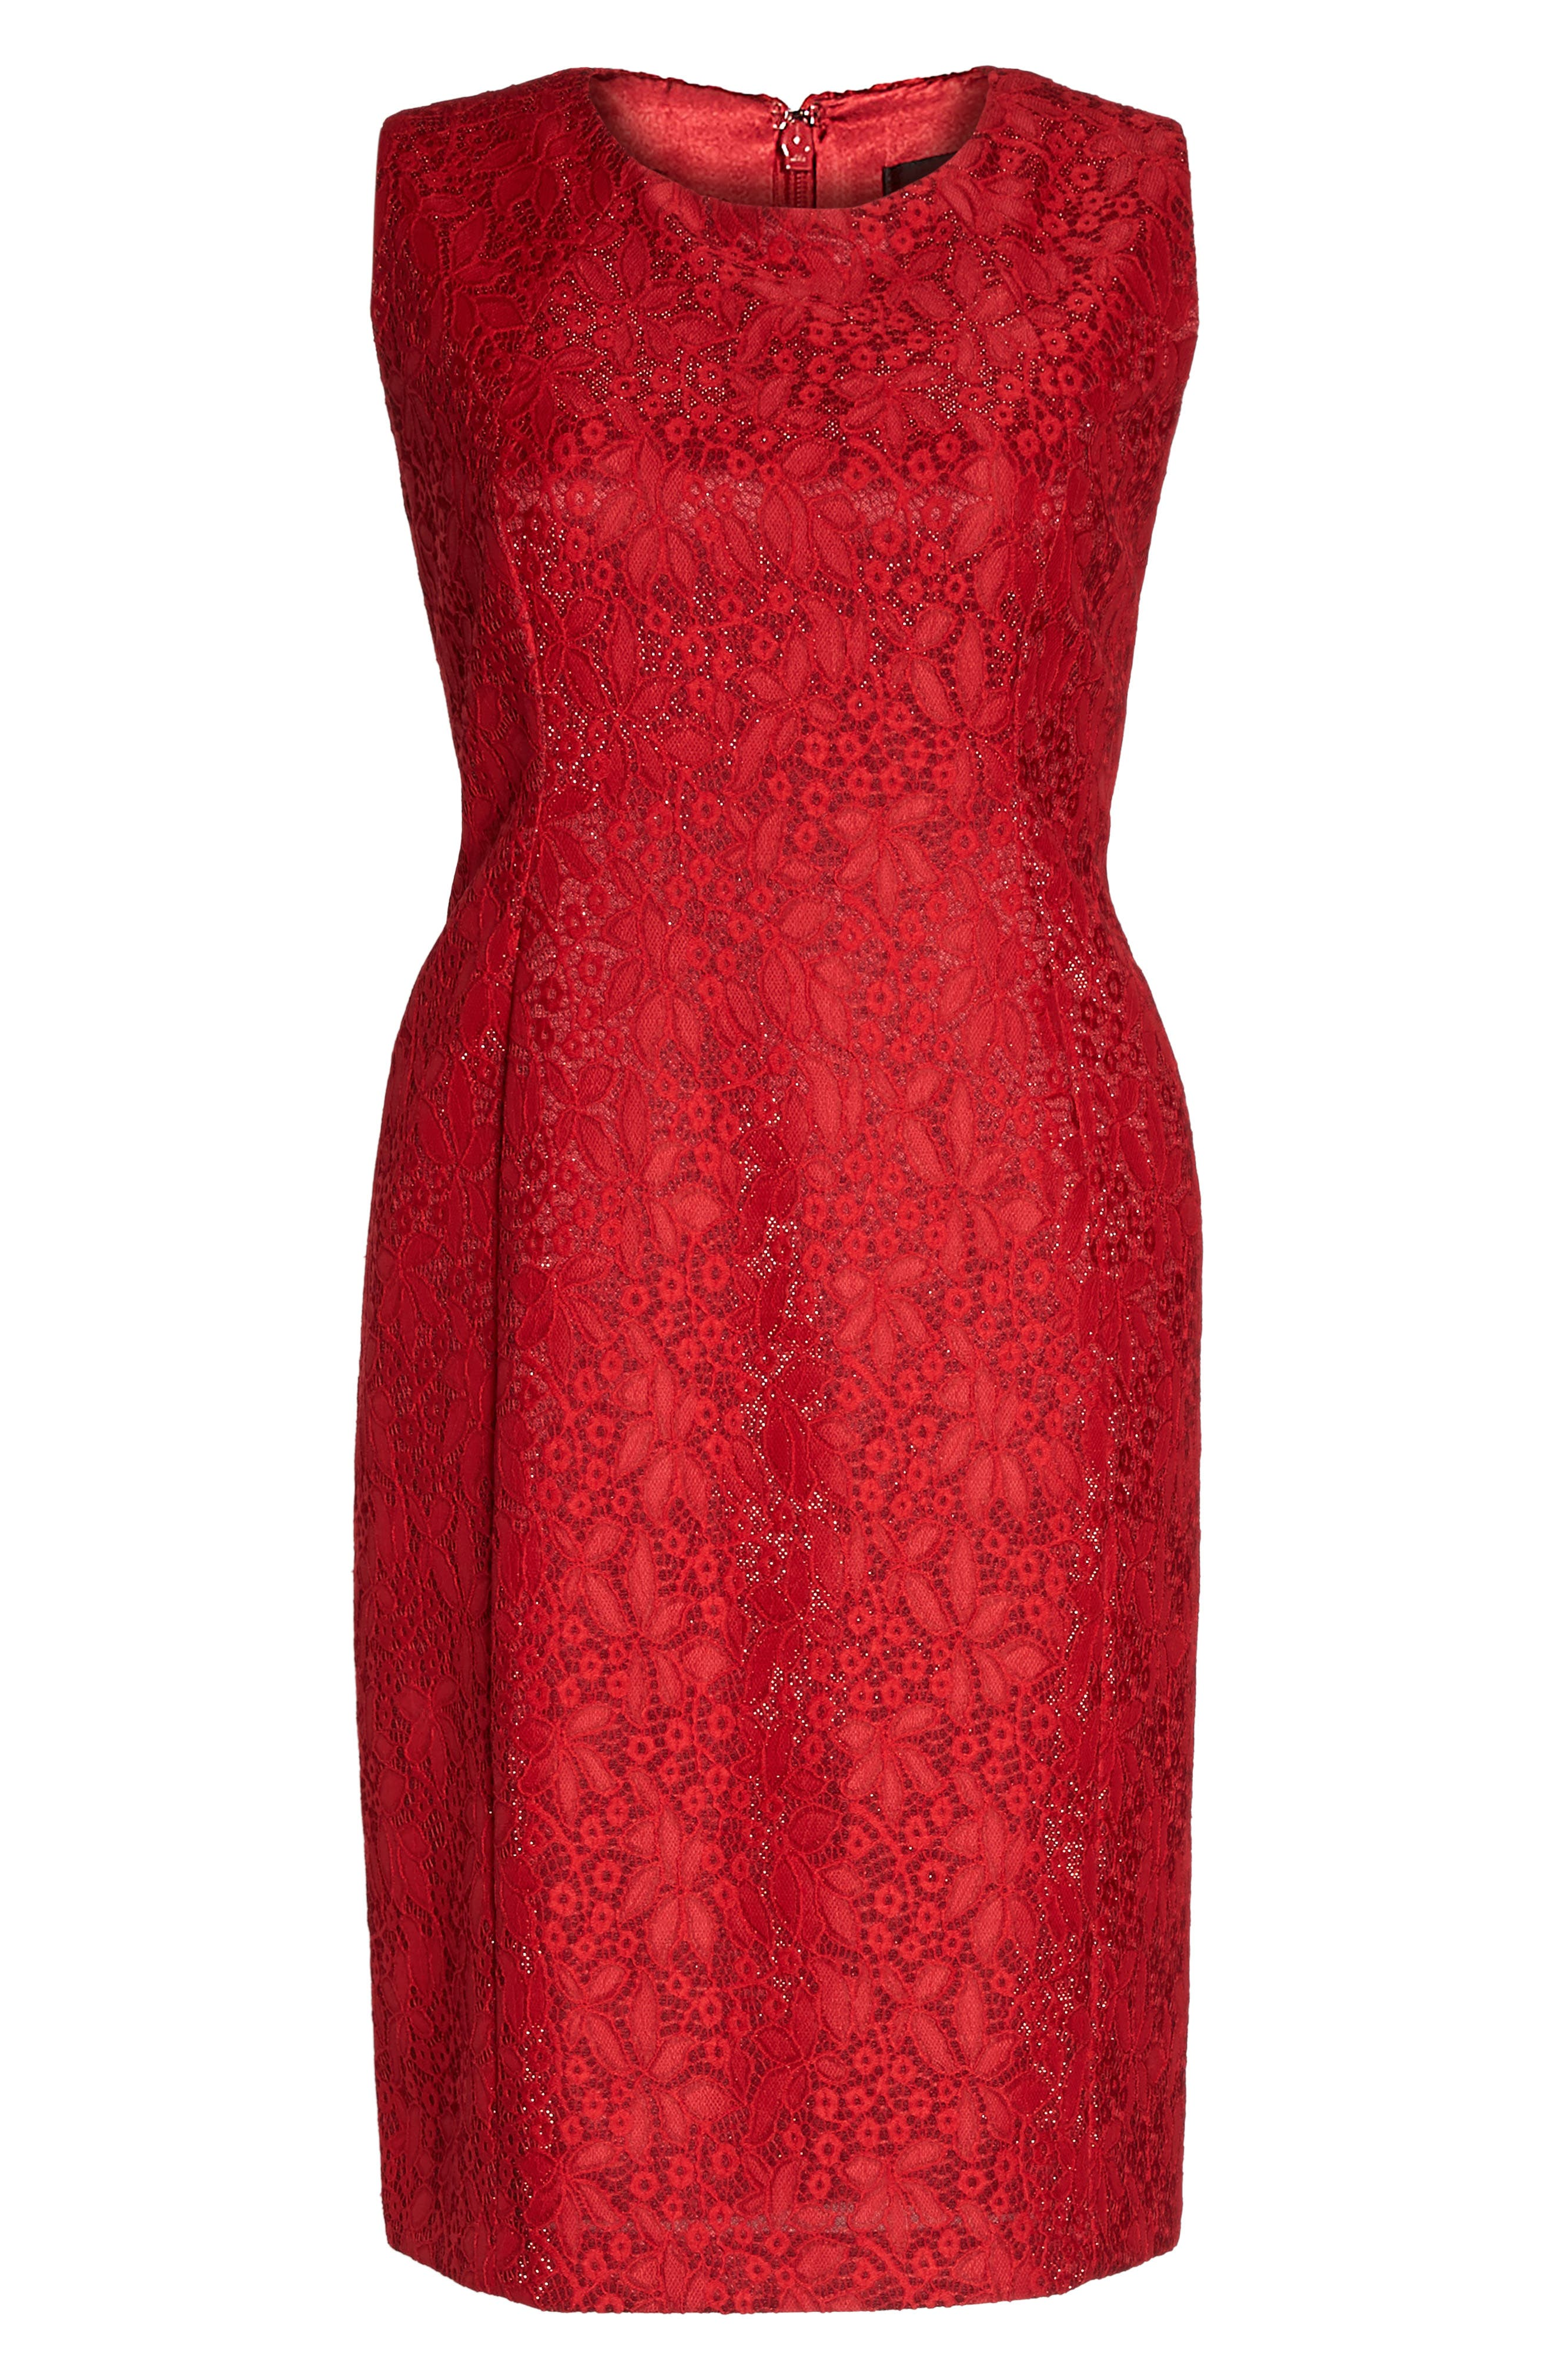 Shimmer Lace Sheath Dress,                             Alternate thumbnail 6, color,                             Lipstick Red